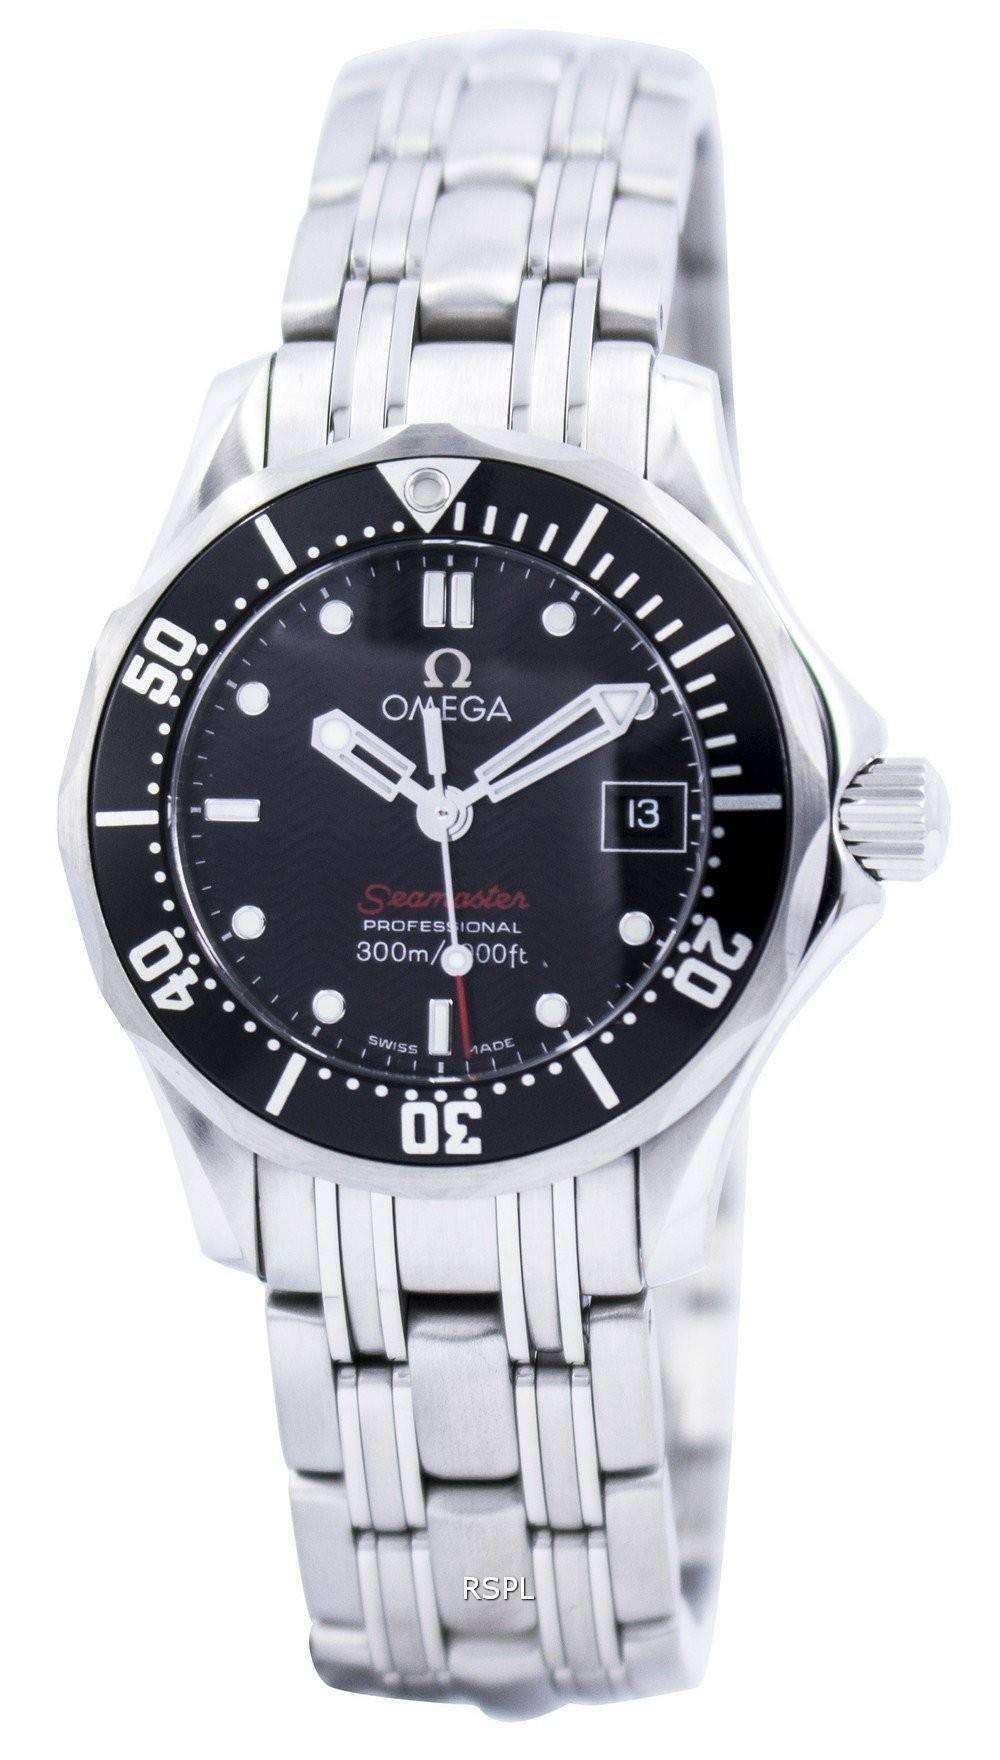 Omega seamaster professional diver 300m quartz womens watch zetawatches for Omega seamaster professional